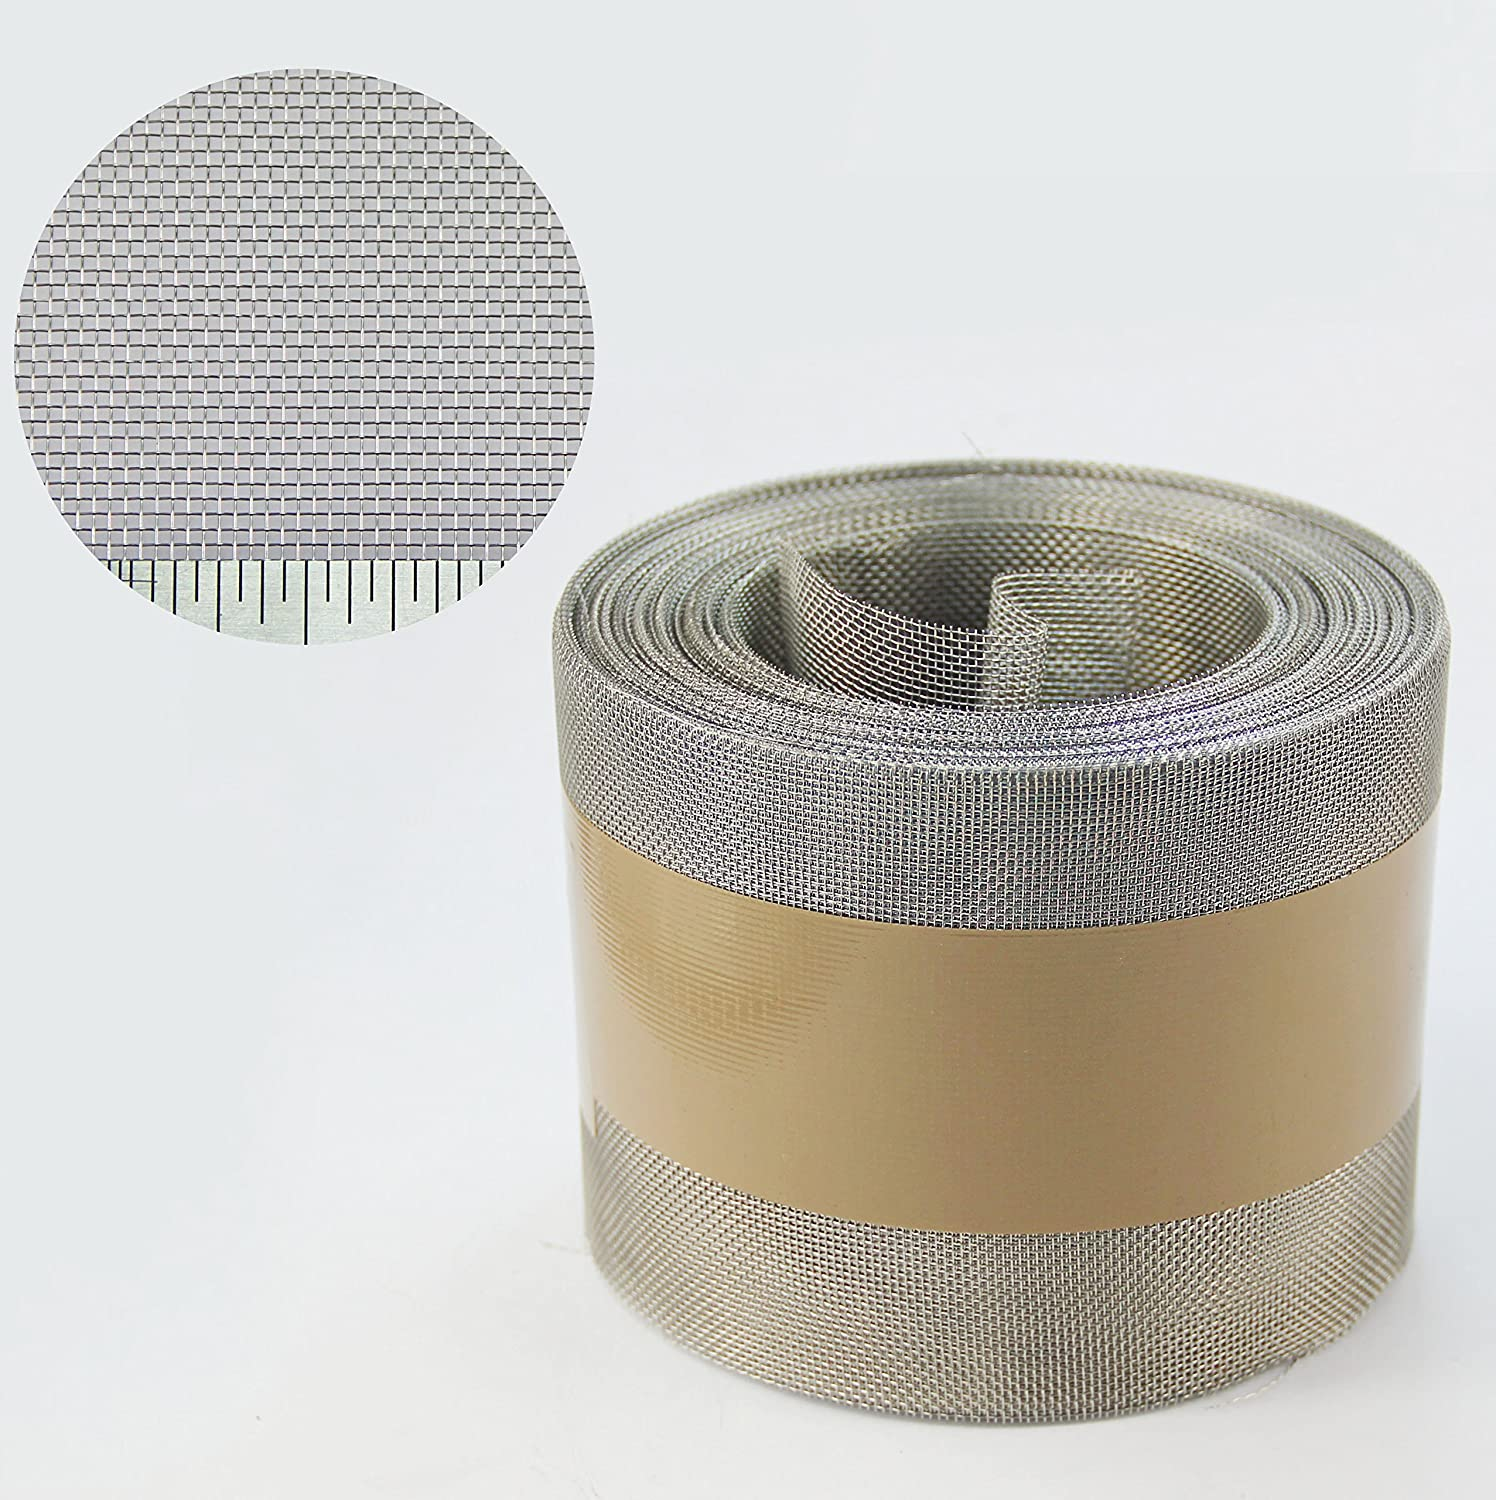 Soffit Insect Mesh - Stainless Steel Mesh - 100mm x 30.5mm Roll + FREE SHIPPING The Mesh Company